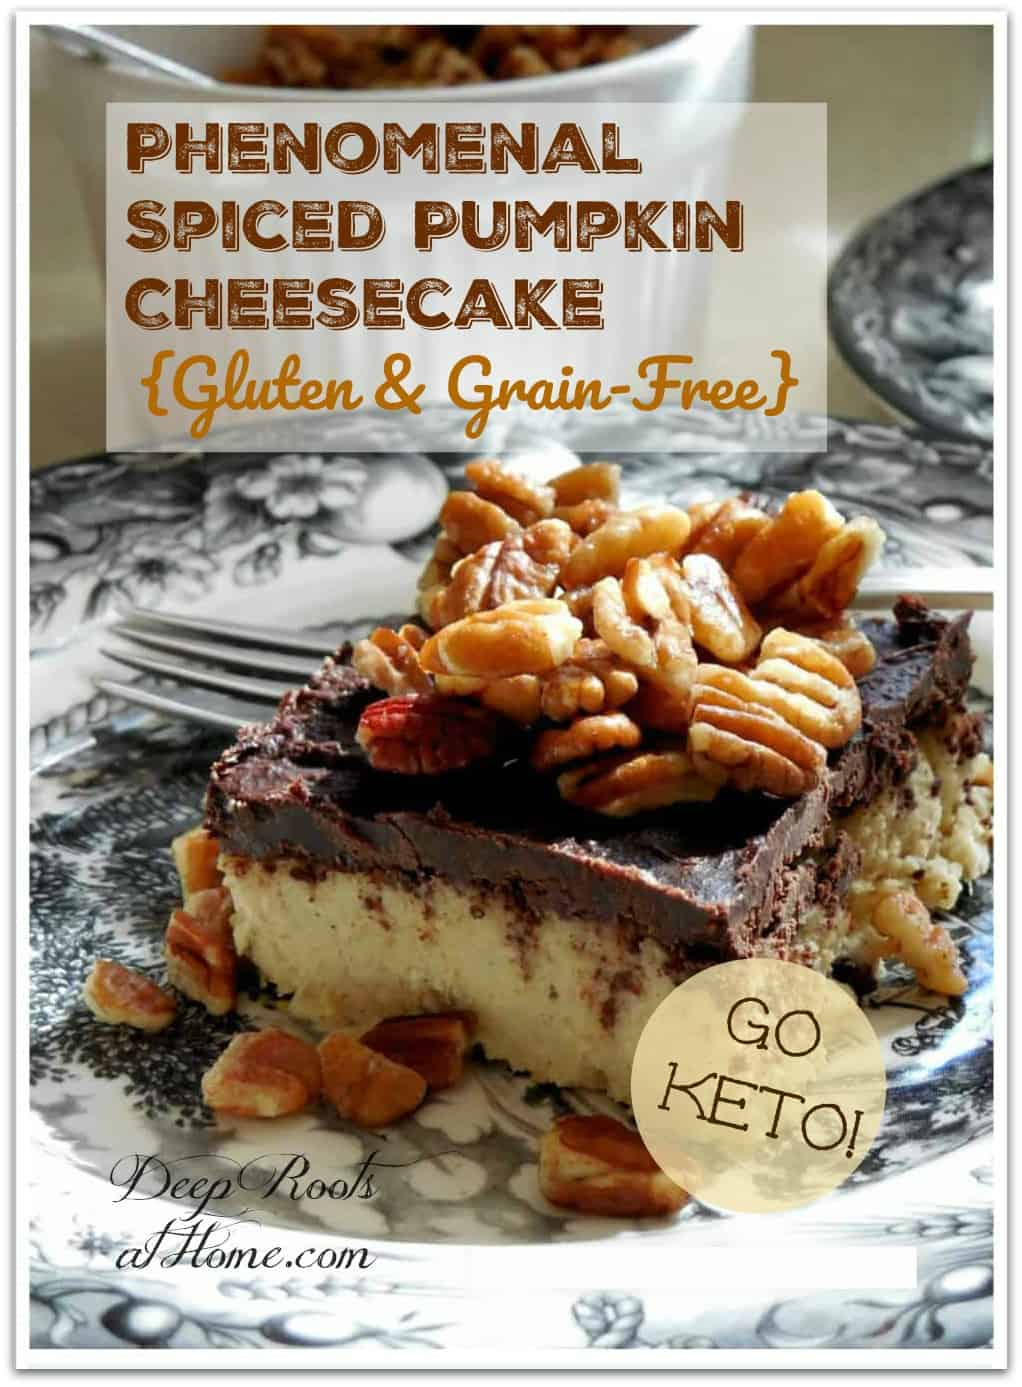 Phenomenal Spiced Pumpkin Cheesecake {Grain & Gluten-Free}. Pumpkin Cheesecake with a chocolate topping and toasted, salted pecans.